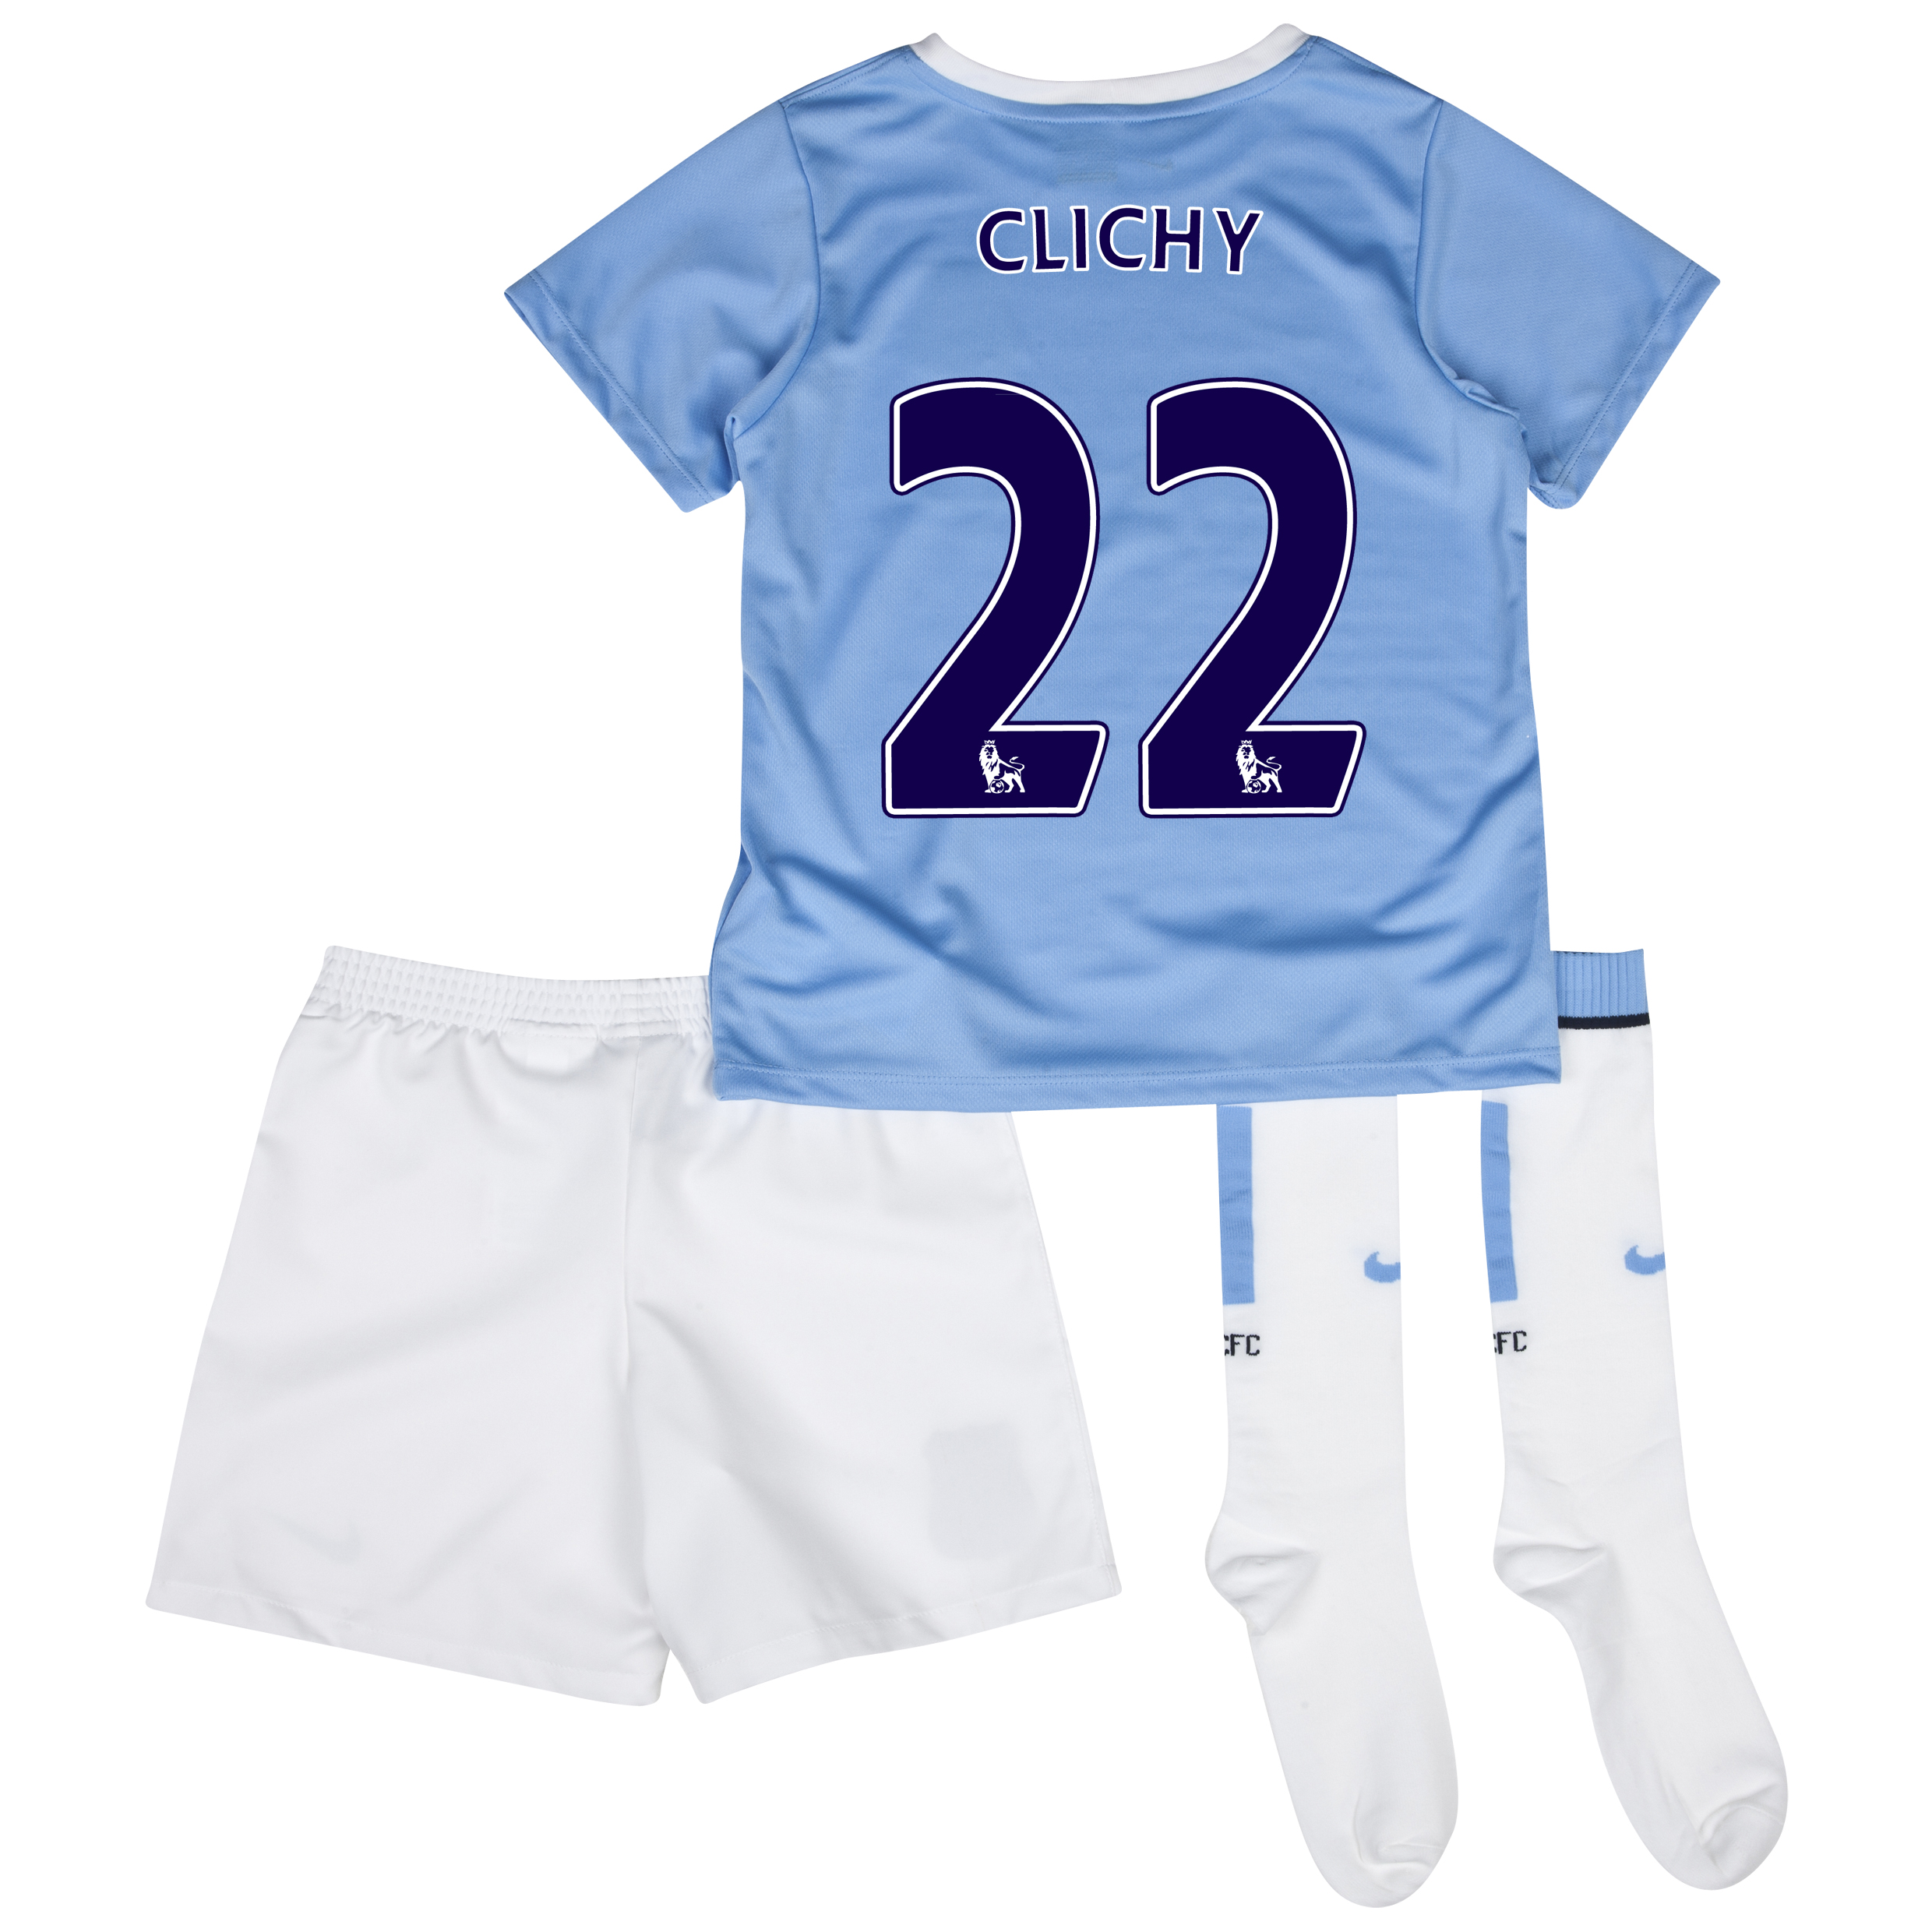 Manchester City Home Little Boys Kit 2013/14 with Clichy 22 printing